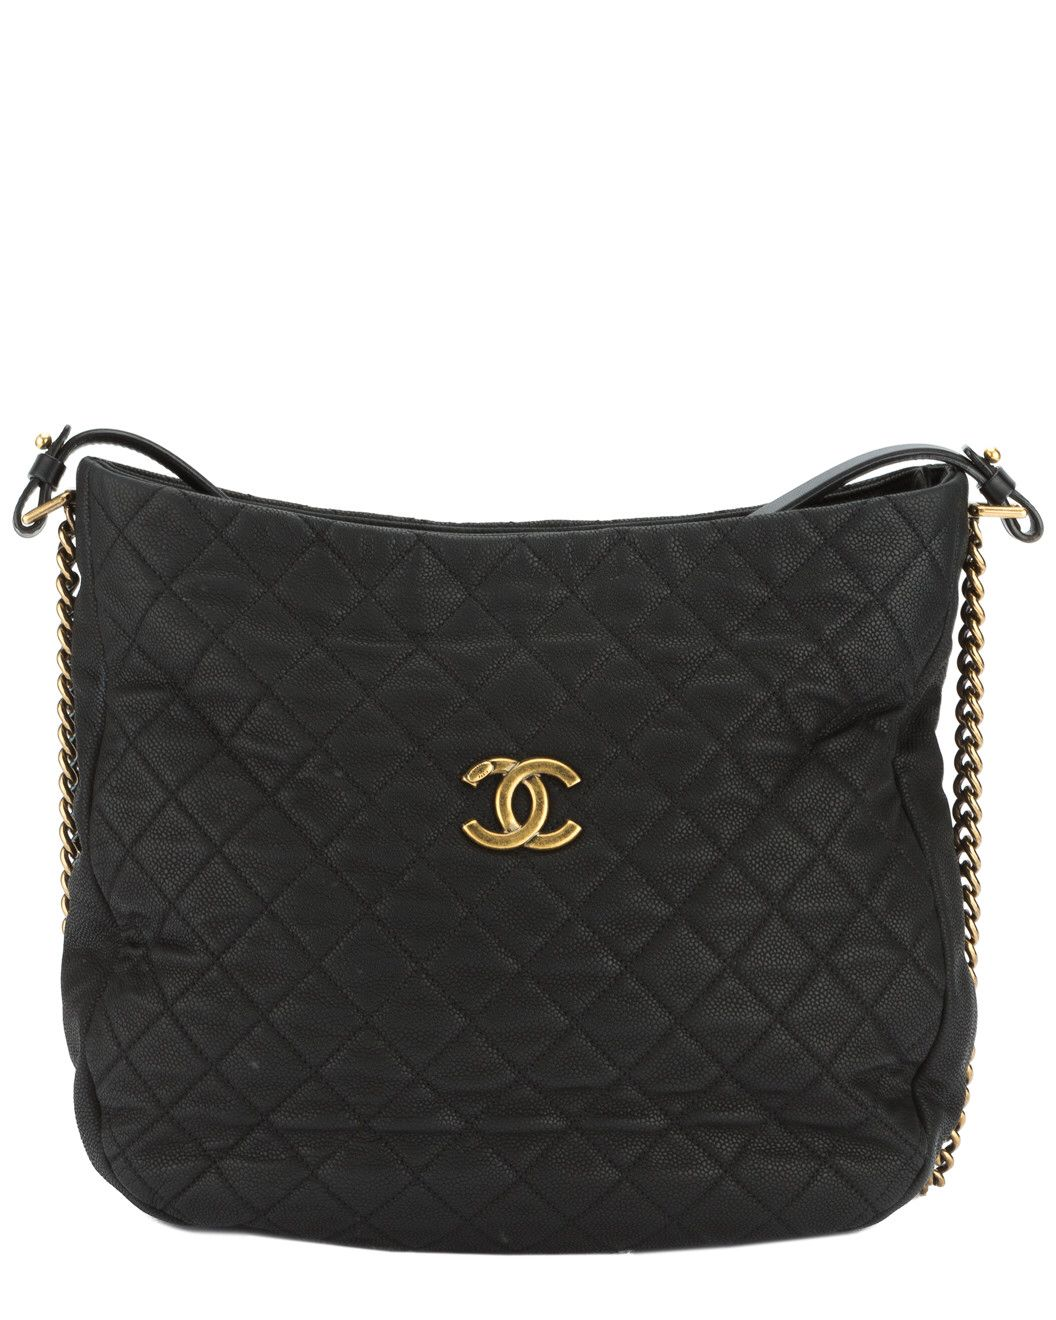 Spotted this Chanel Black Quilted Caviar Leather Hobo on Rue La La. Shop (quickly!).